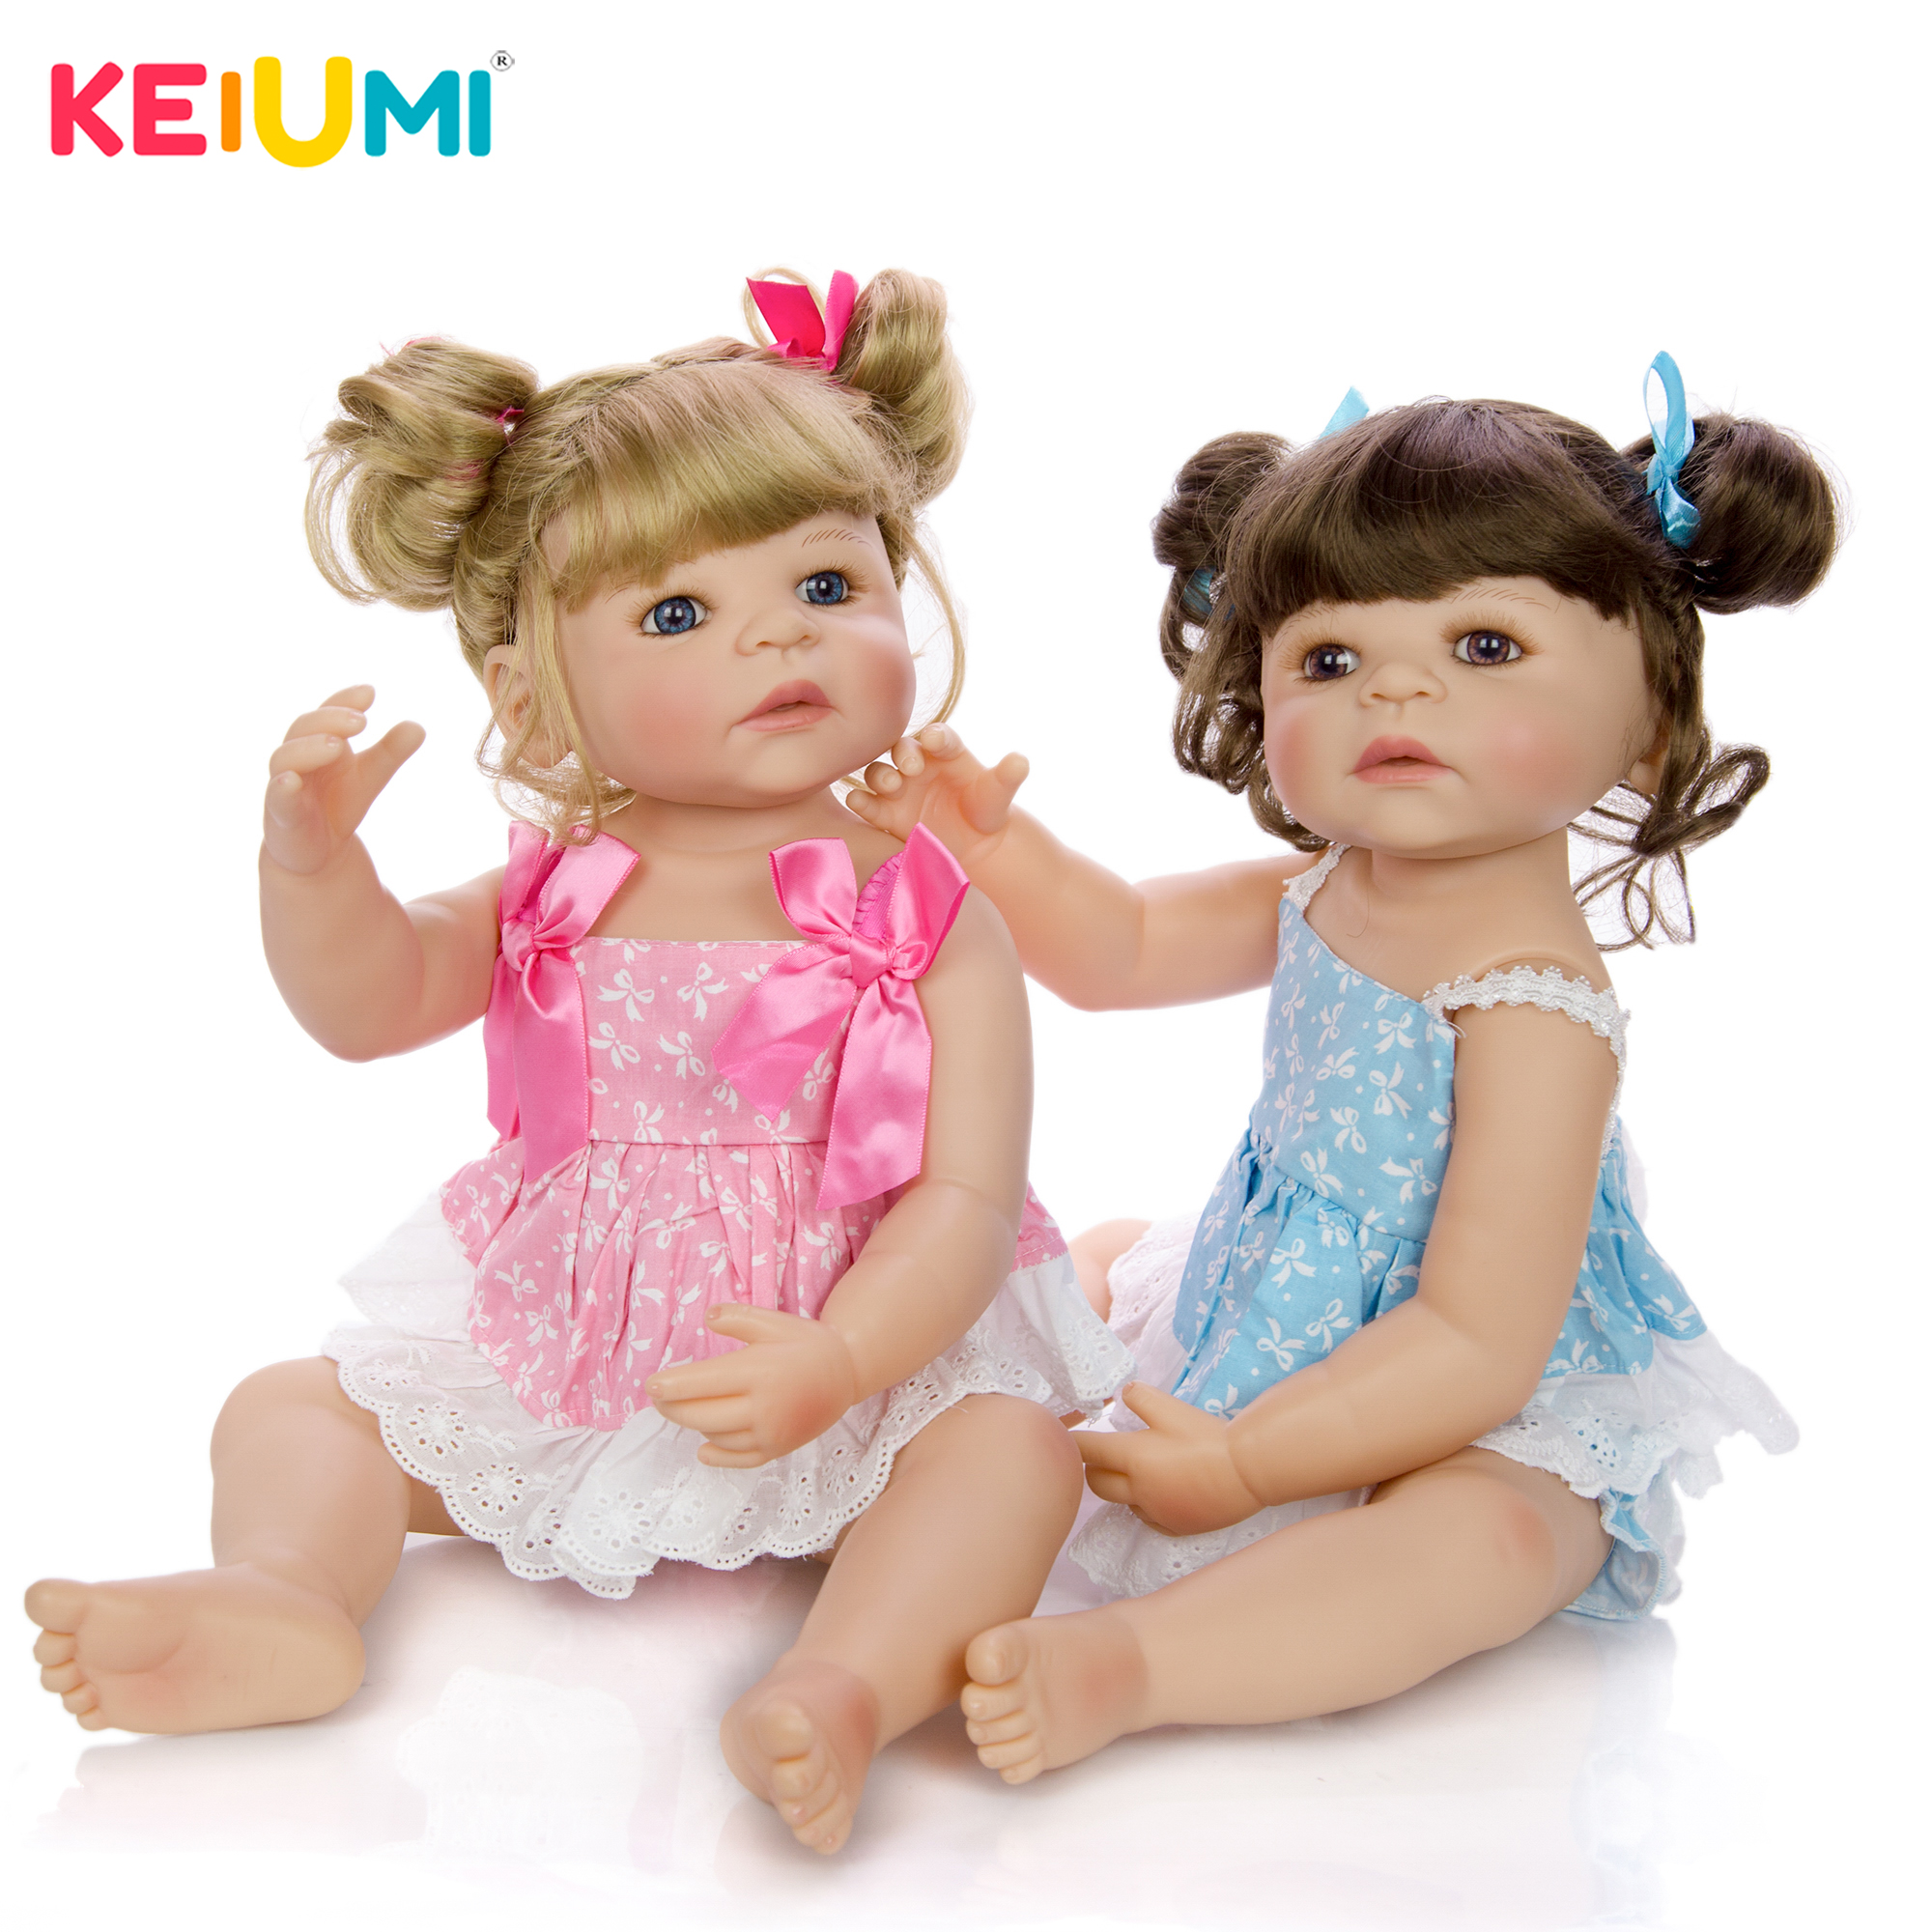 New Style Reborn Full Body Silicone Babies Vinyl Twins Girl Baby Toy 22 Fashion Dolls Baby